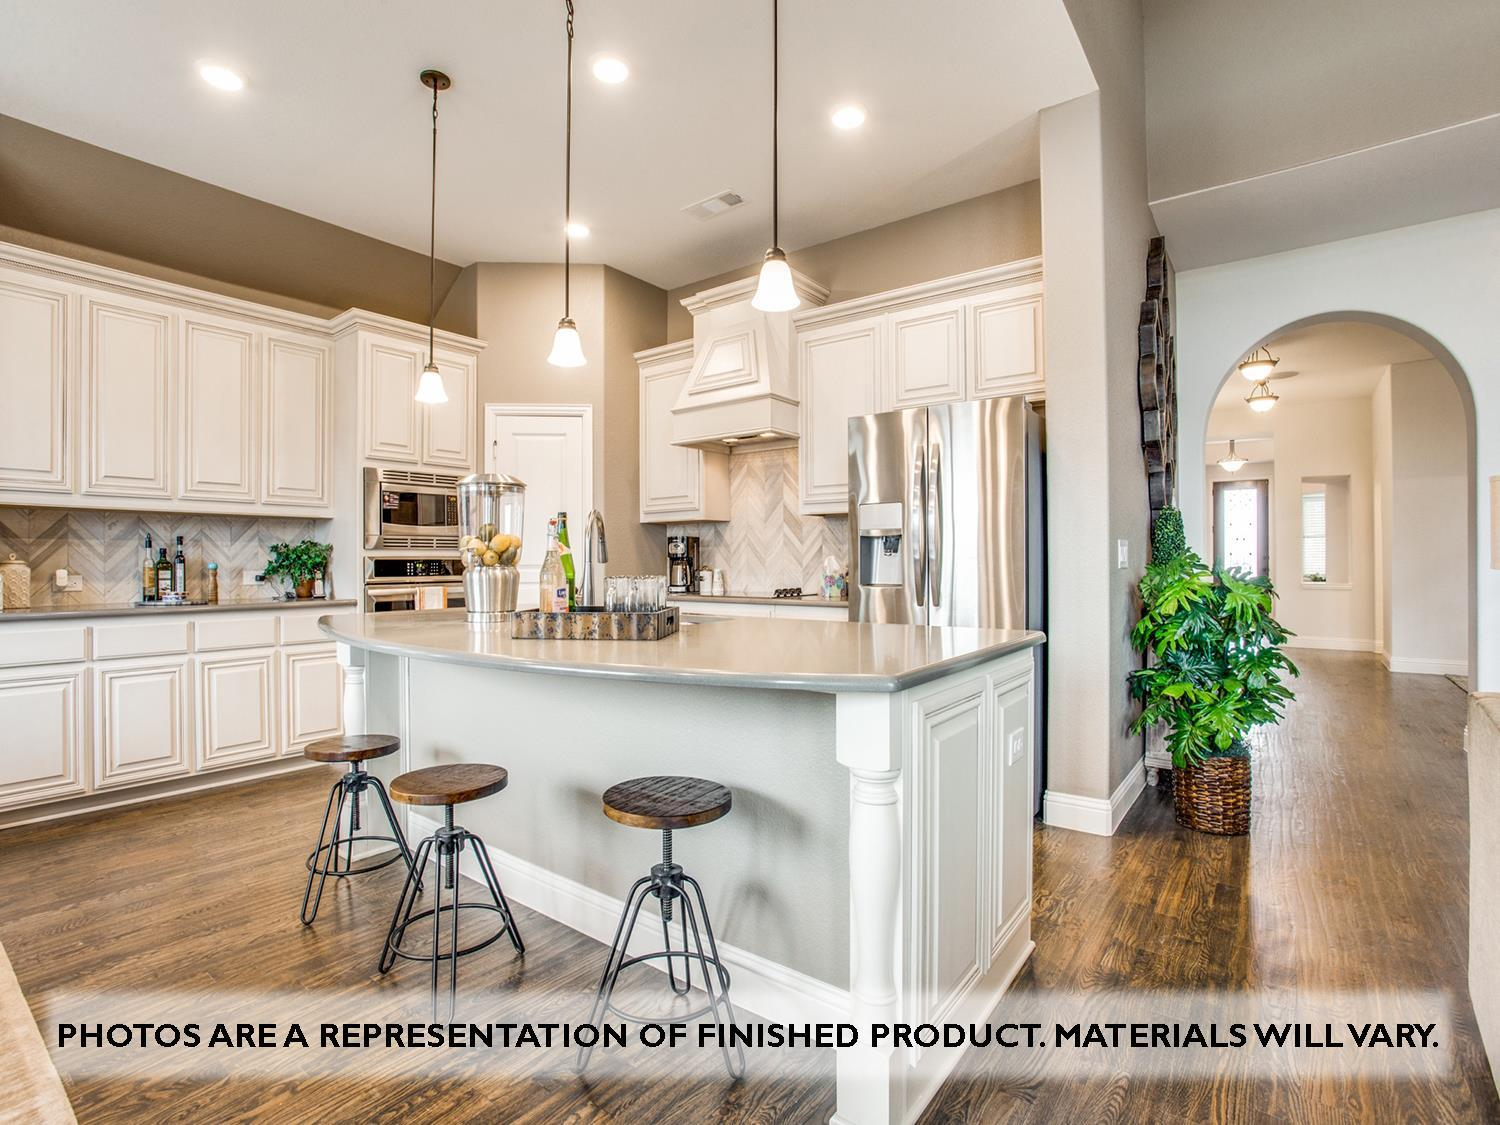 Kitchen featured in the Primrose FE VI By Bloomfield Homes in Fort Worth, TX